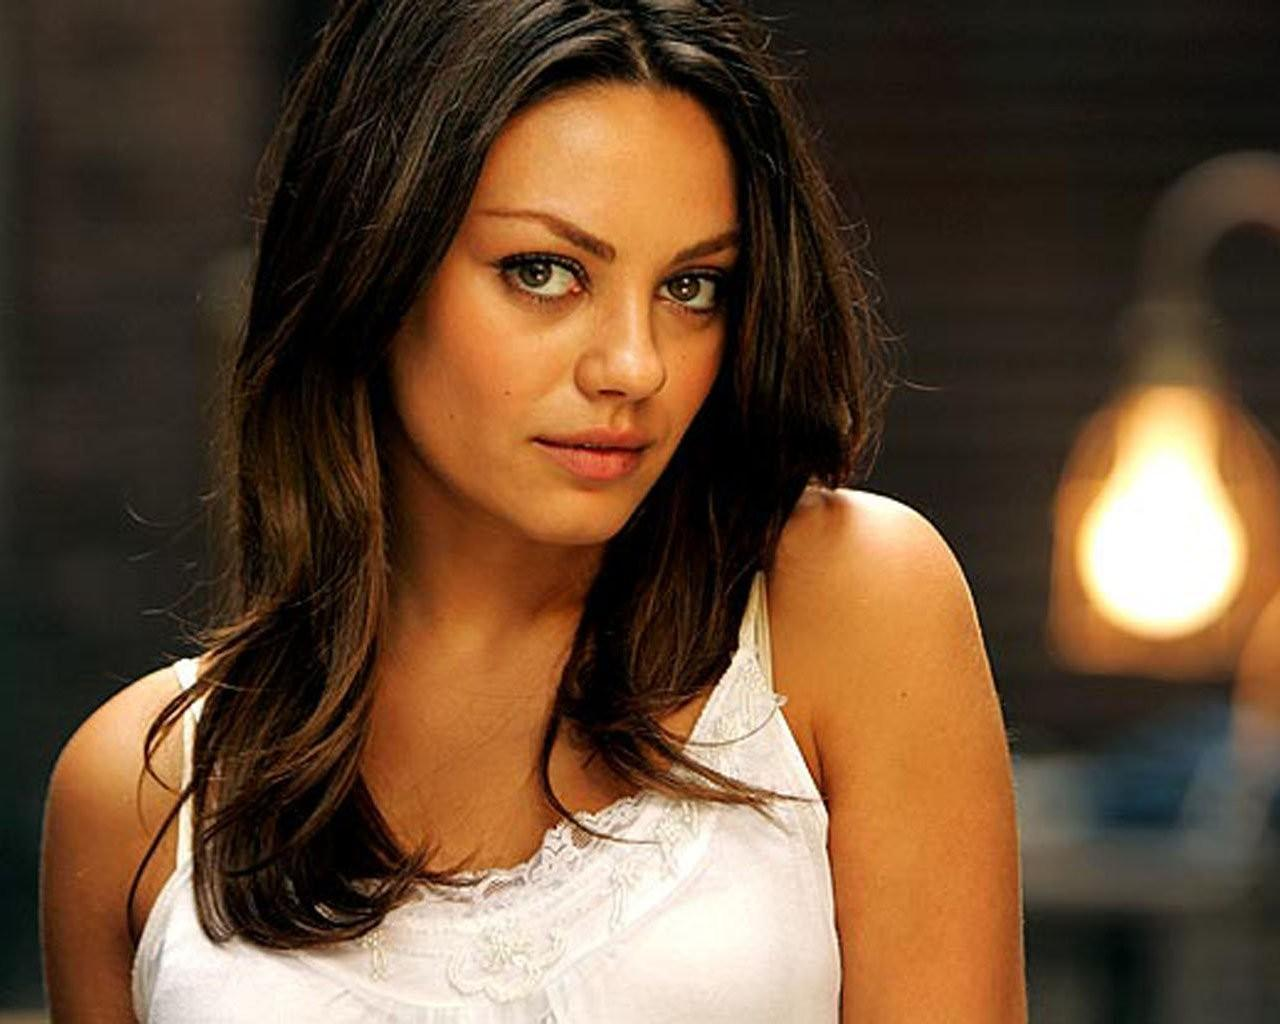 collectionmdwn mila kunis forgetting - photo #19